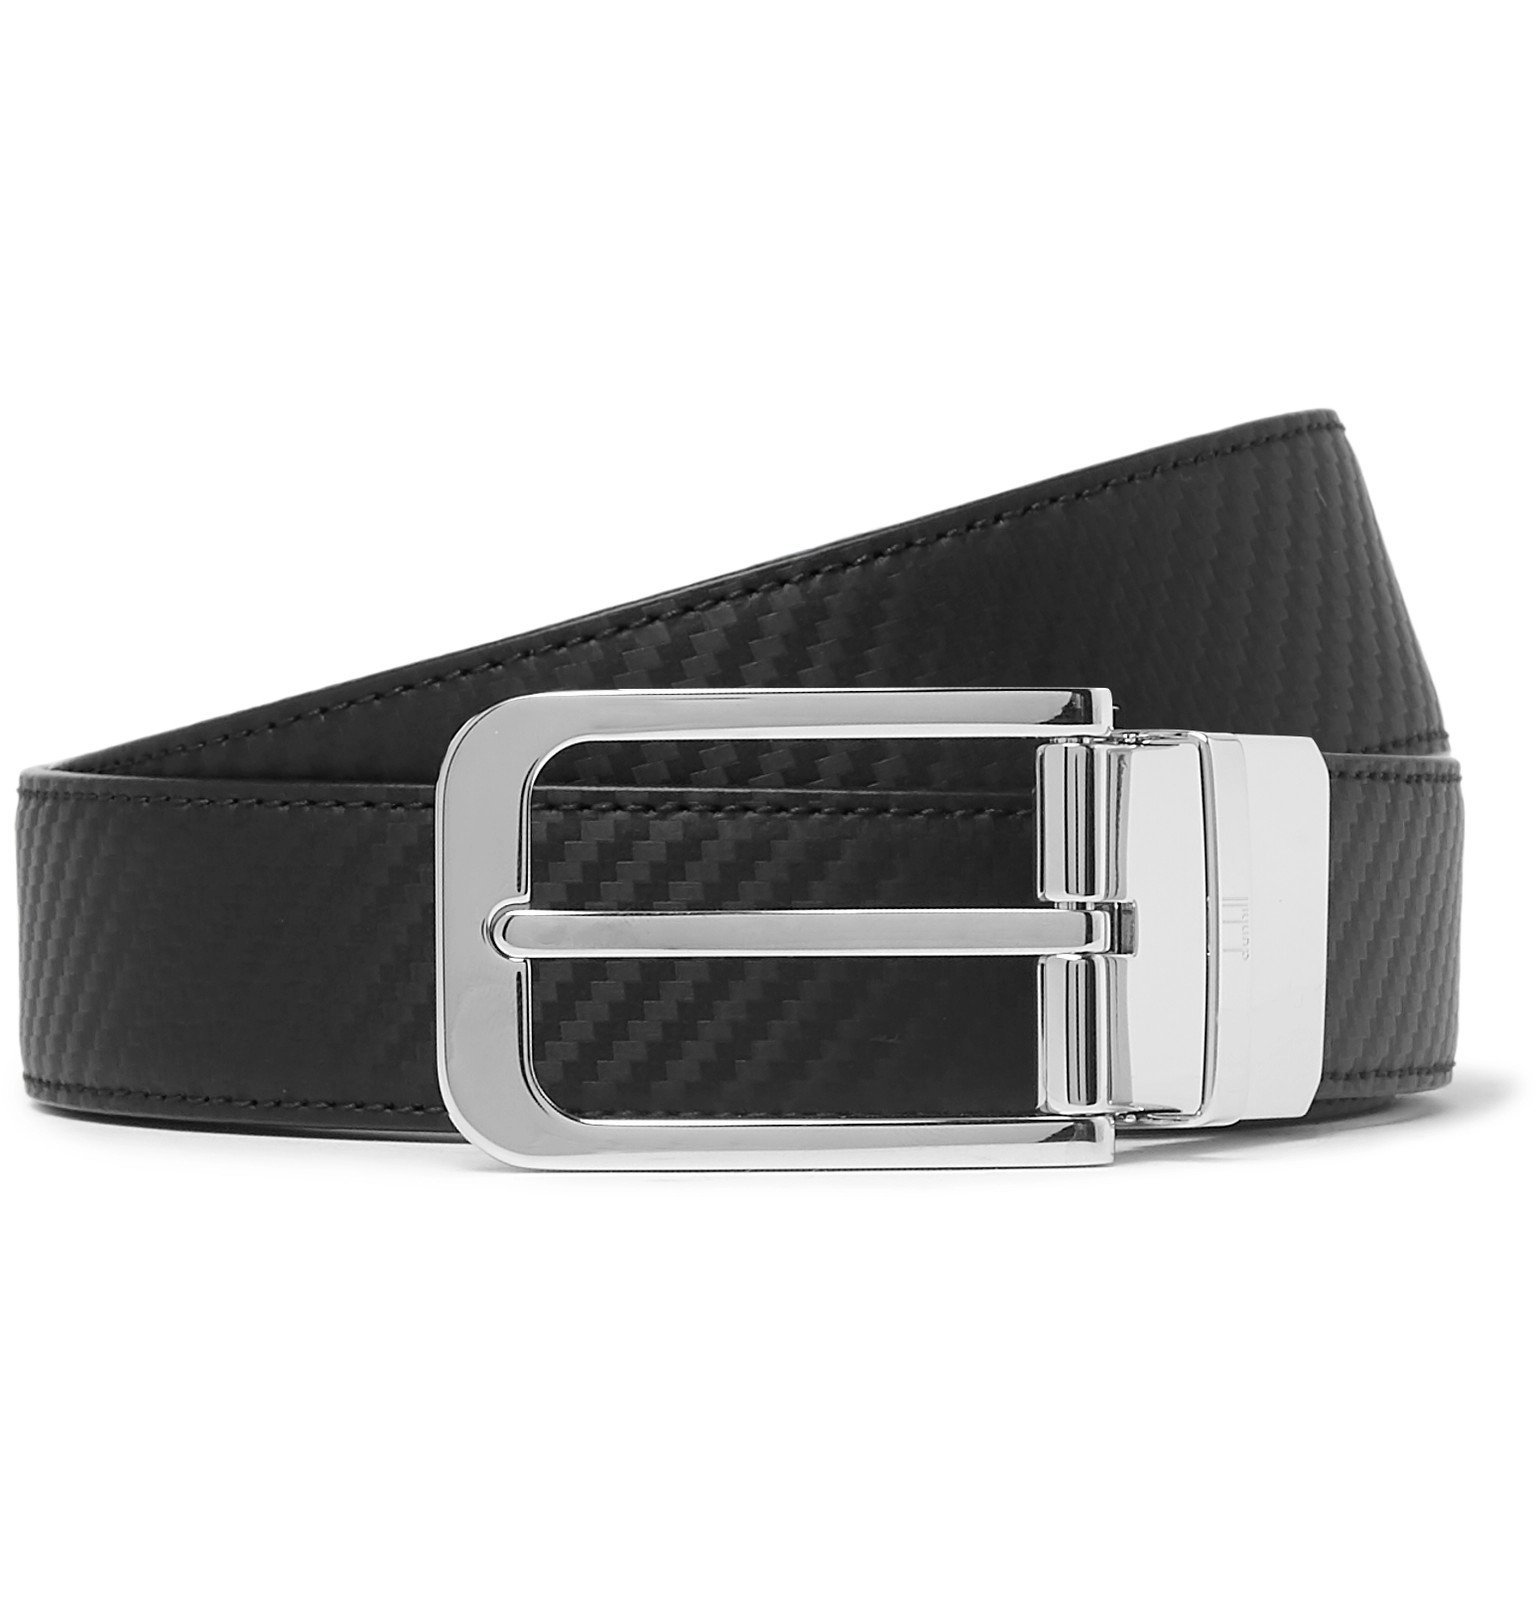 Dunhill - 3cm Black and Brown Reversible Leather Belt - Black